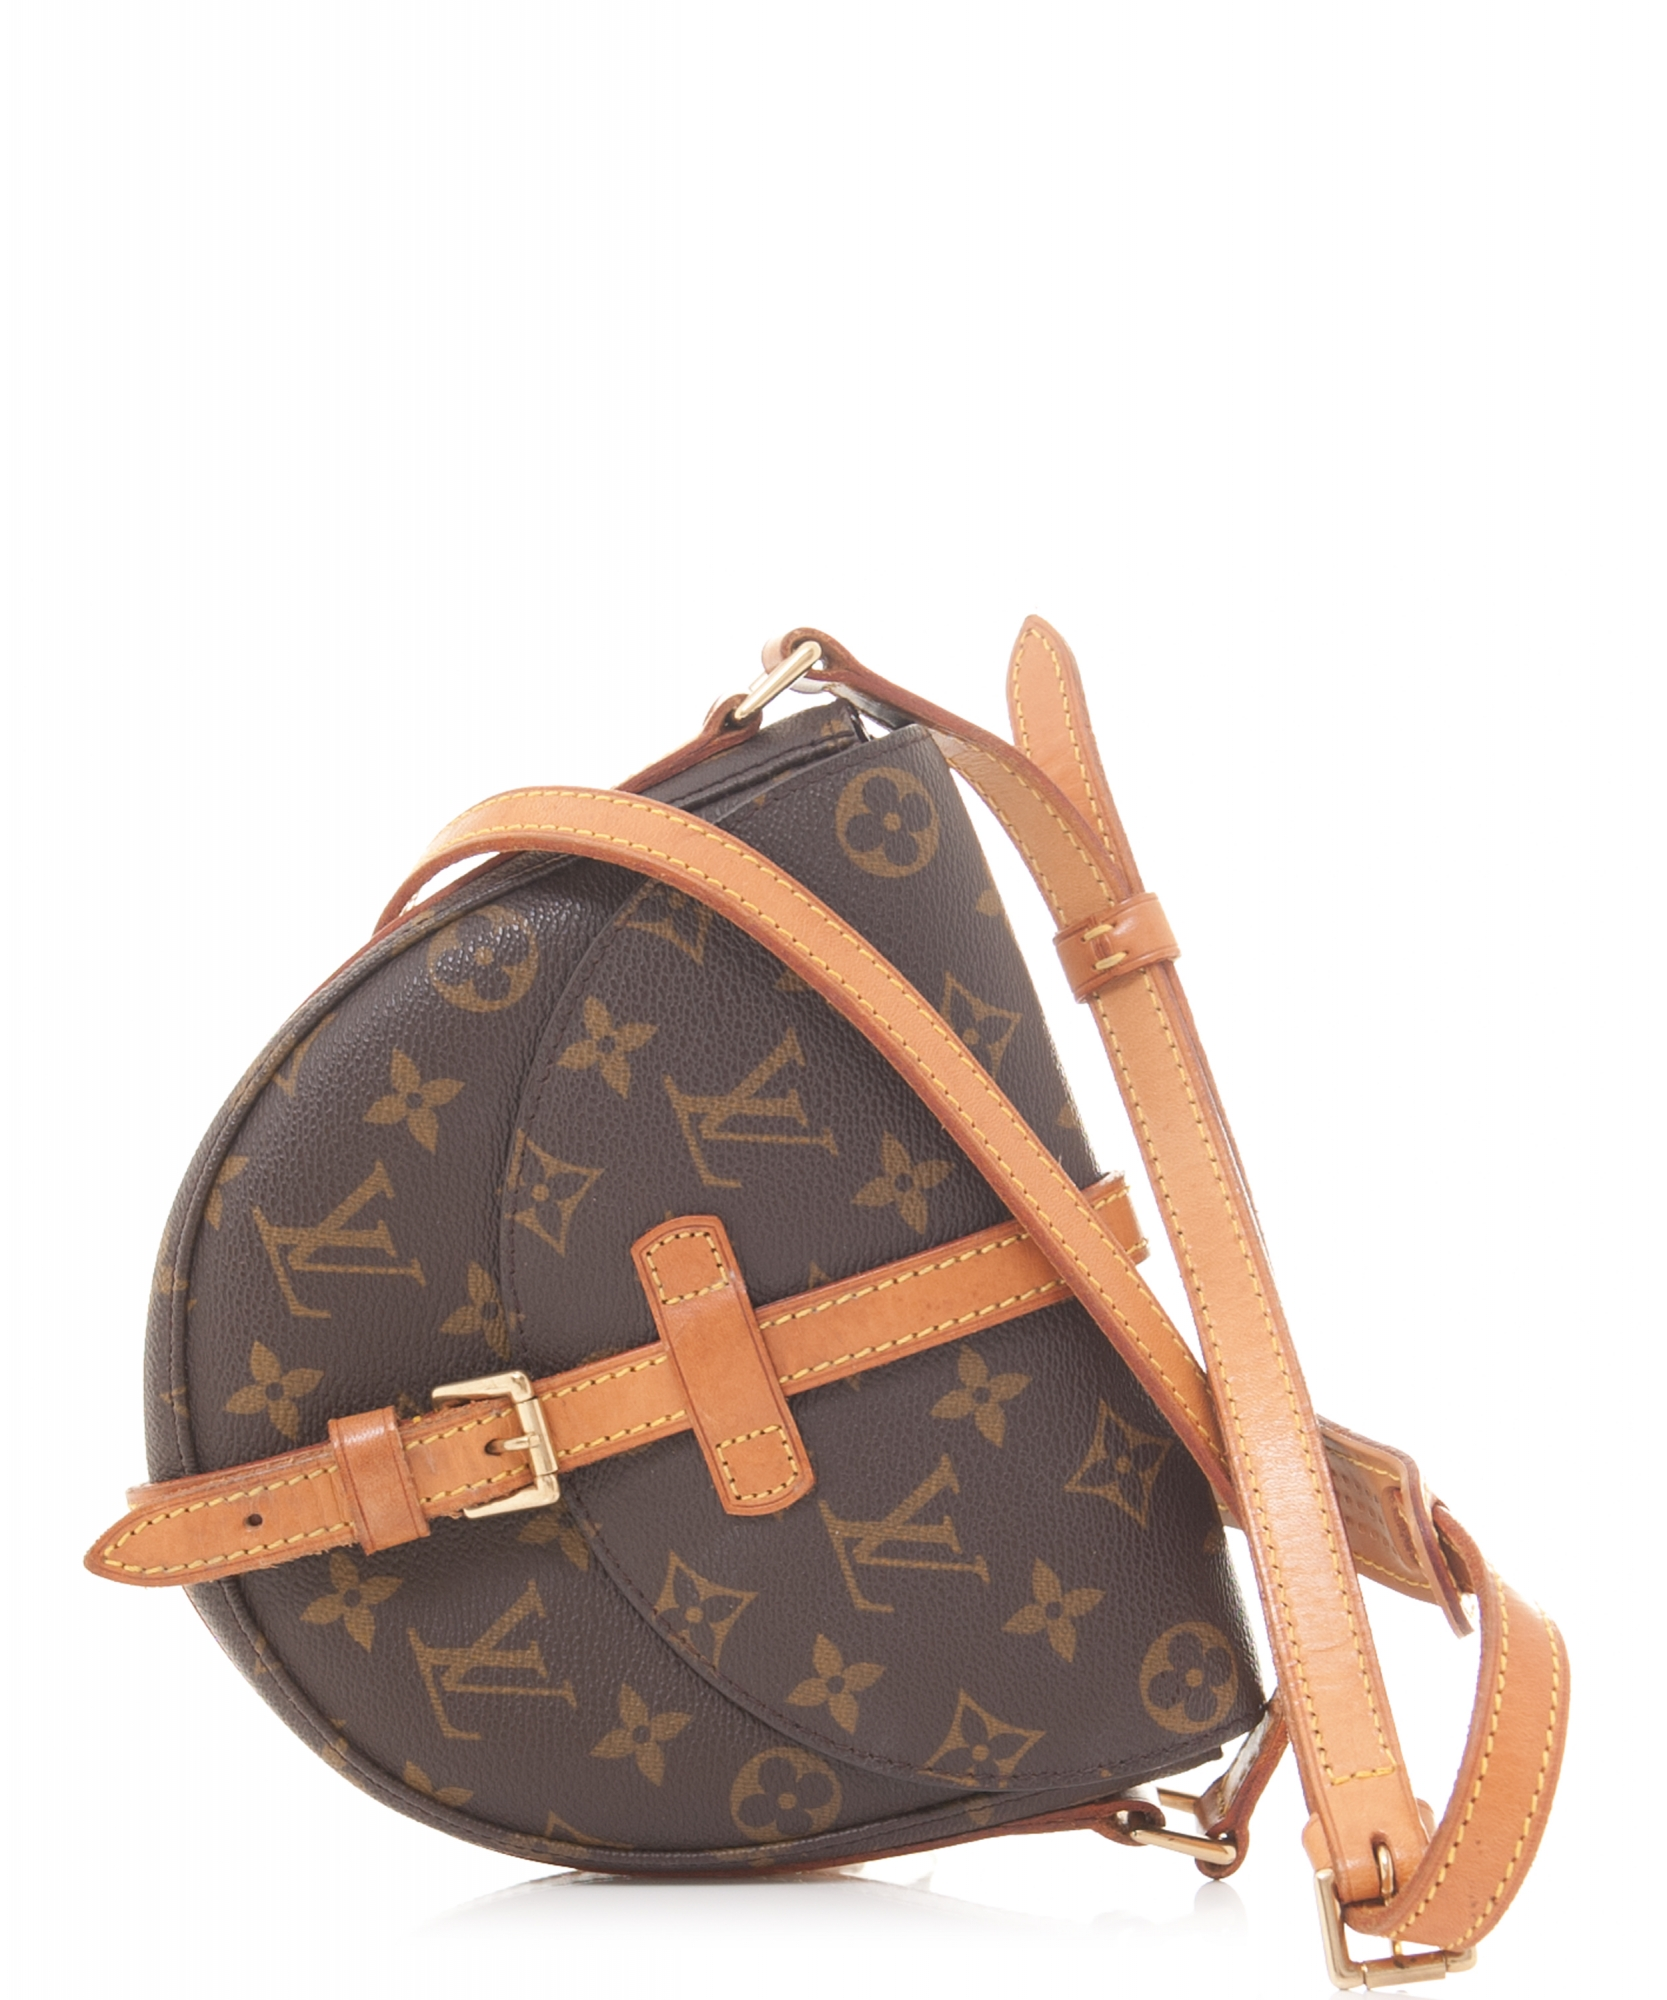 f6e9f3f6ade5 Tap to expand · Louis Vuitton  Chantilly  Shoulder Bag in Monogram ...